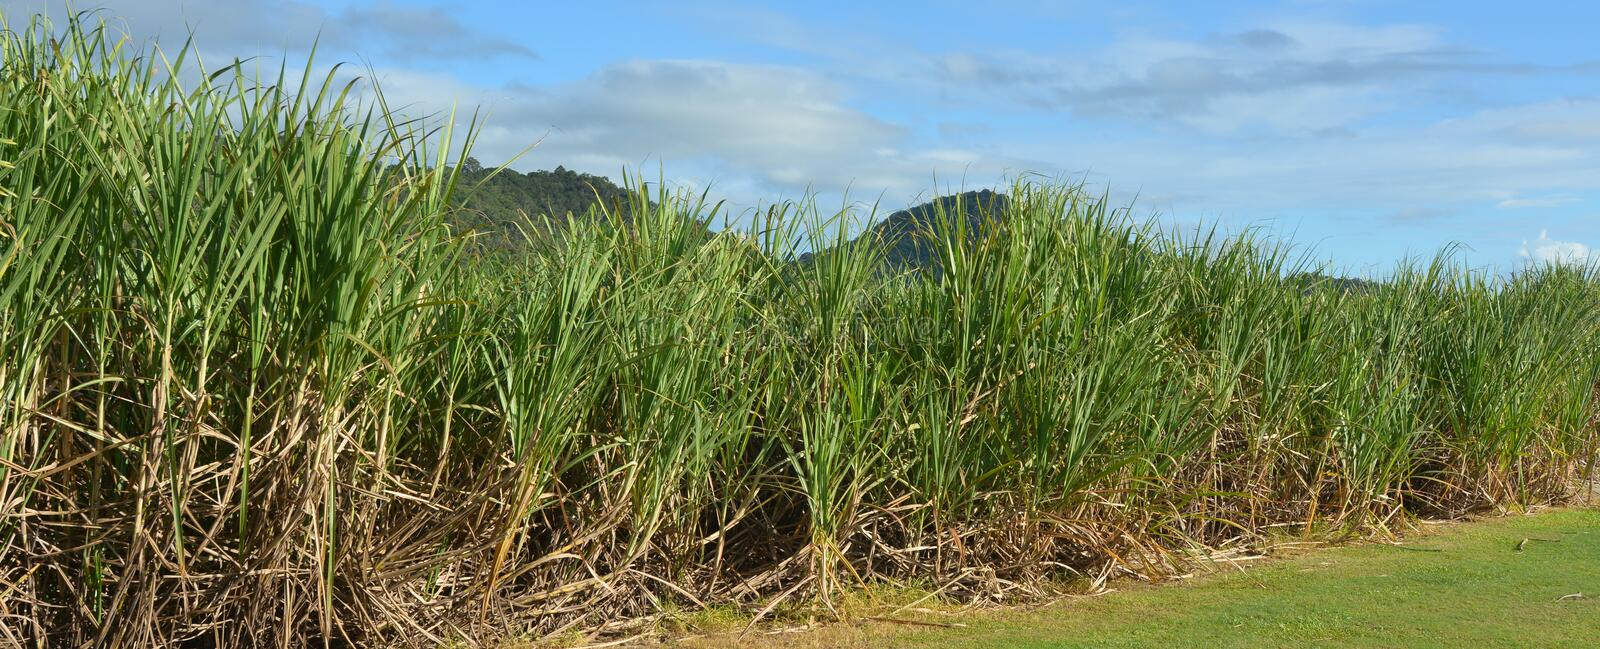 Sugar cane grow in a farm royalty free stock photos